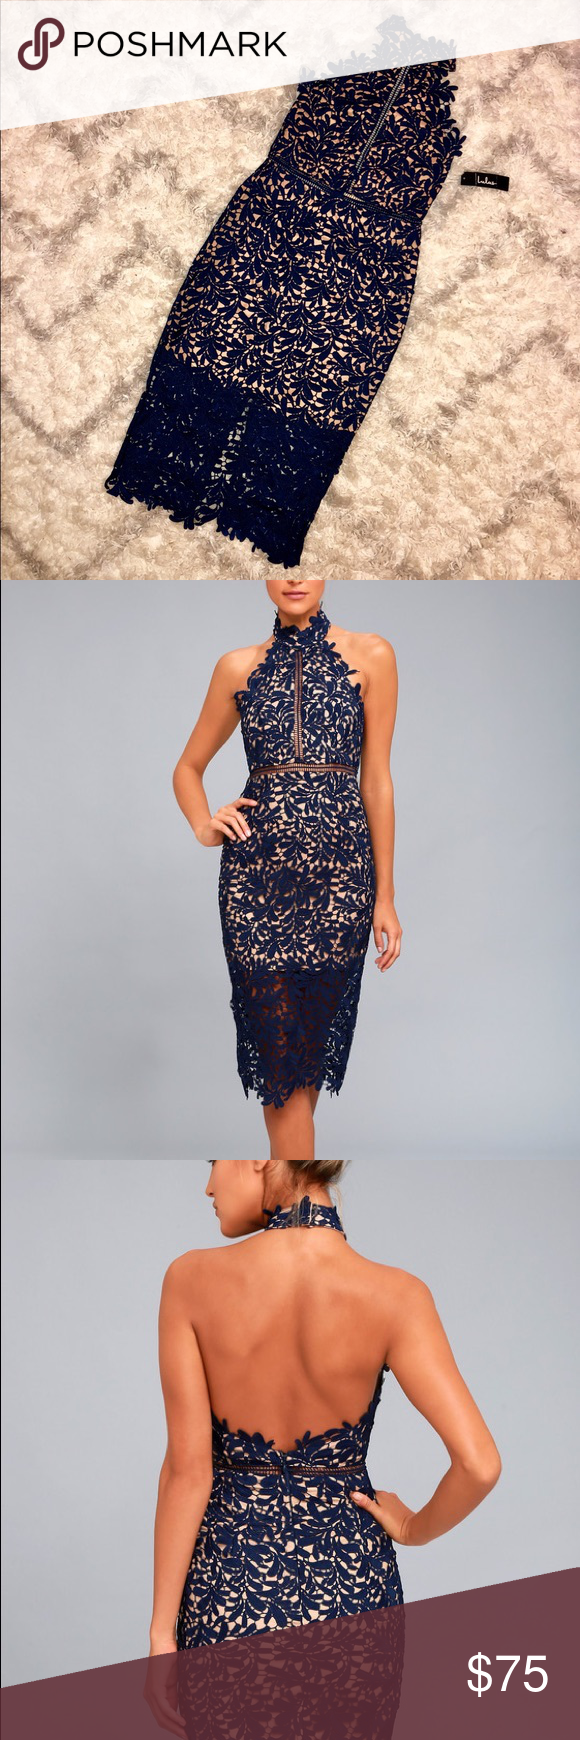 4f65a07300b5e Divine Destiny Navy Blue Lace Midi Dress Brand new with tags - never been  worn!